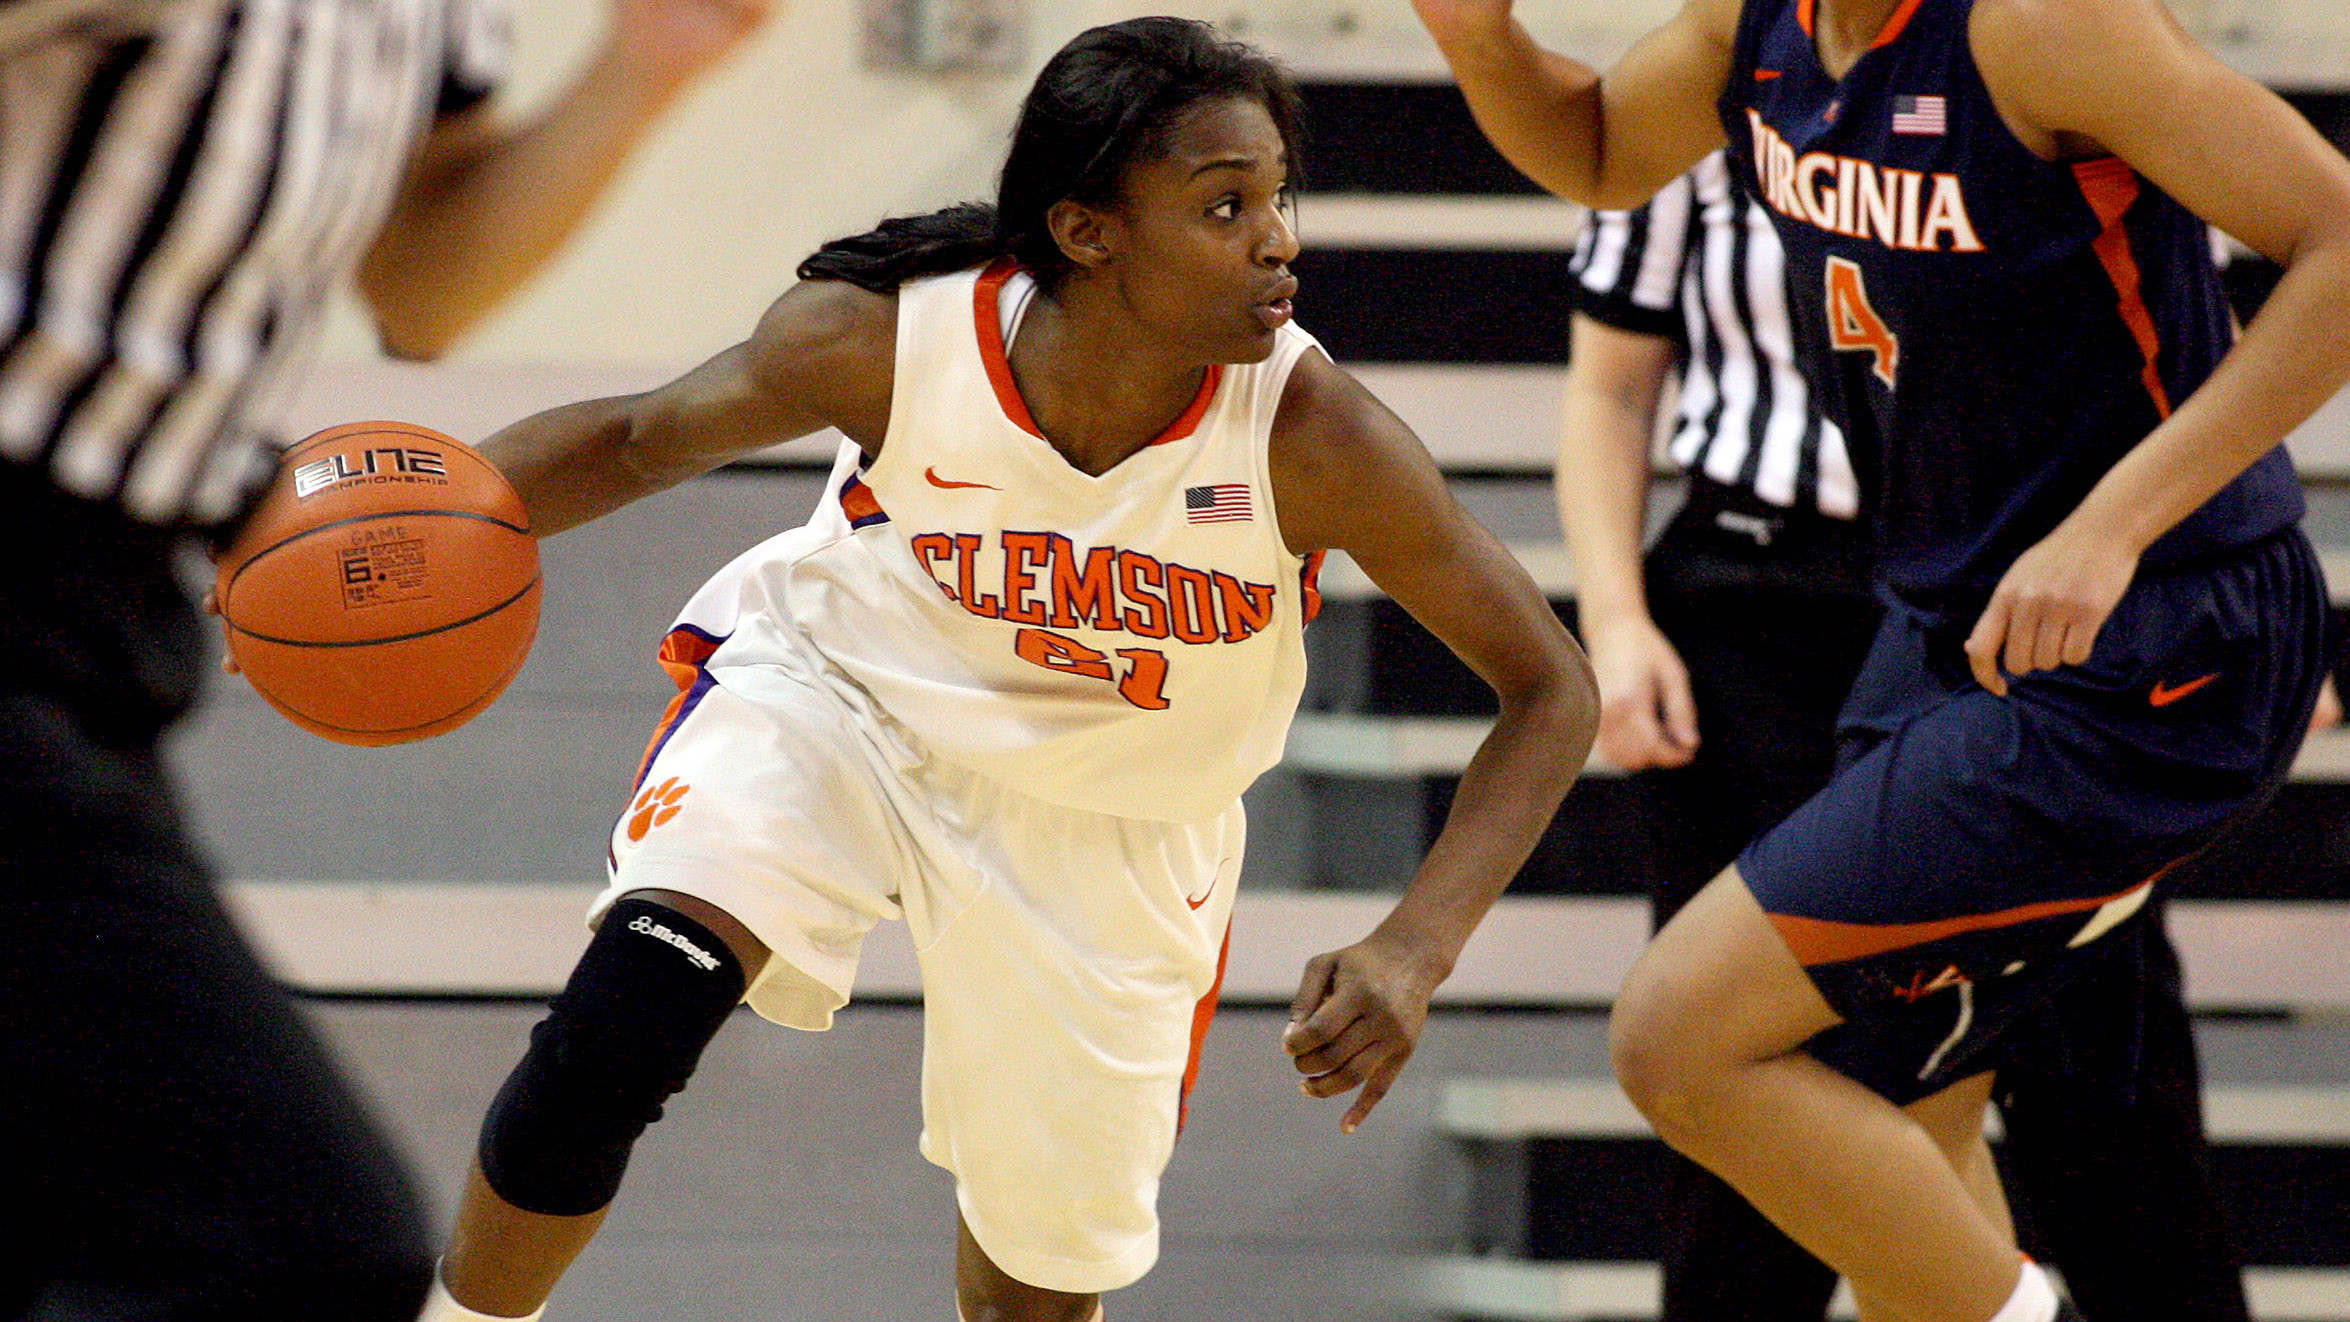 Lady Tigers Claim Second Straight Double-Digit Comeback Victory